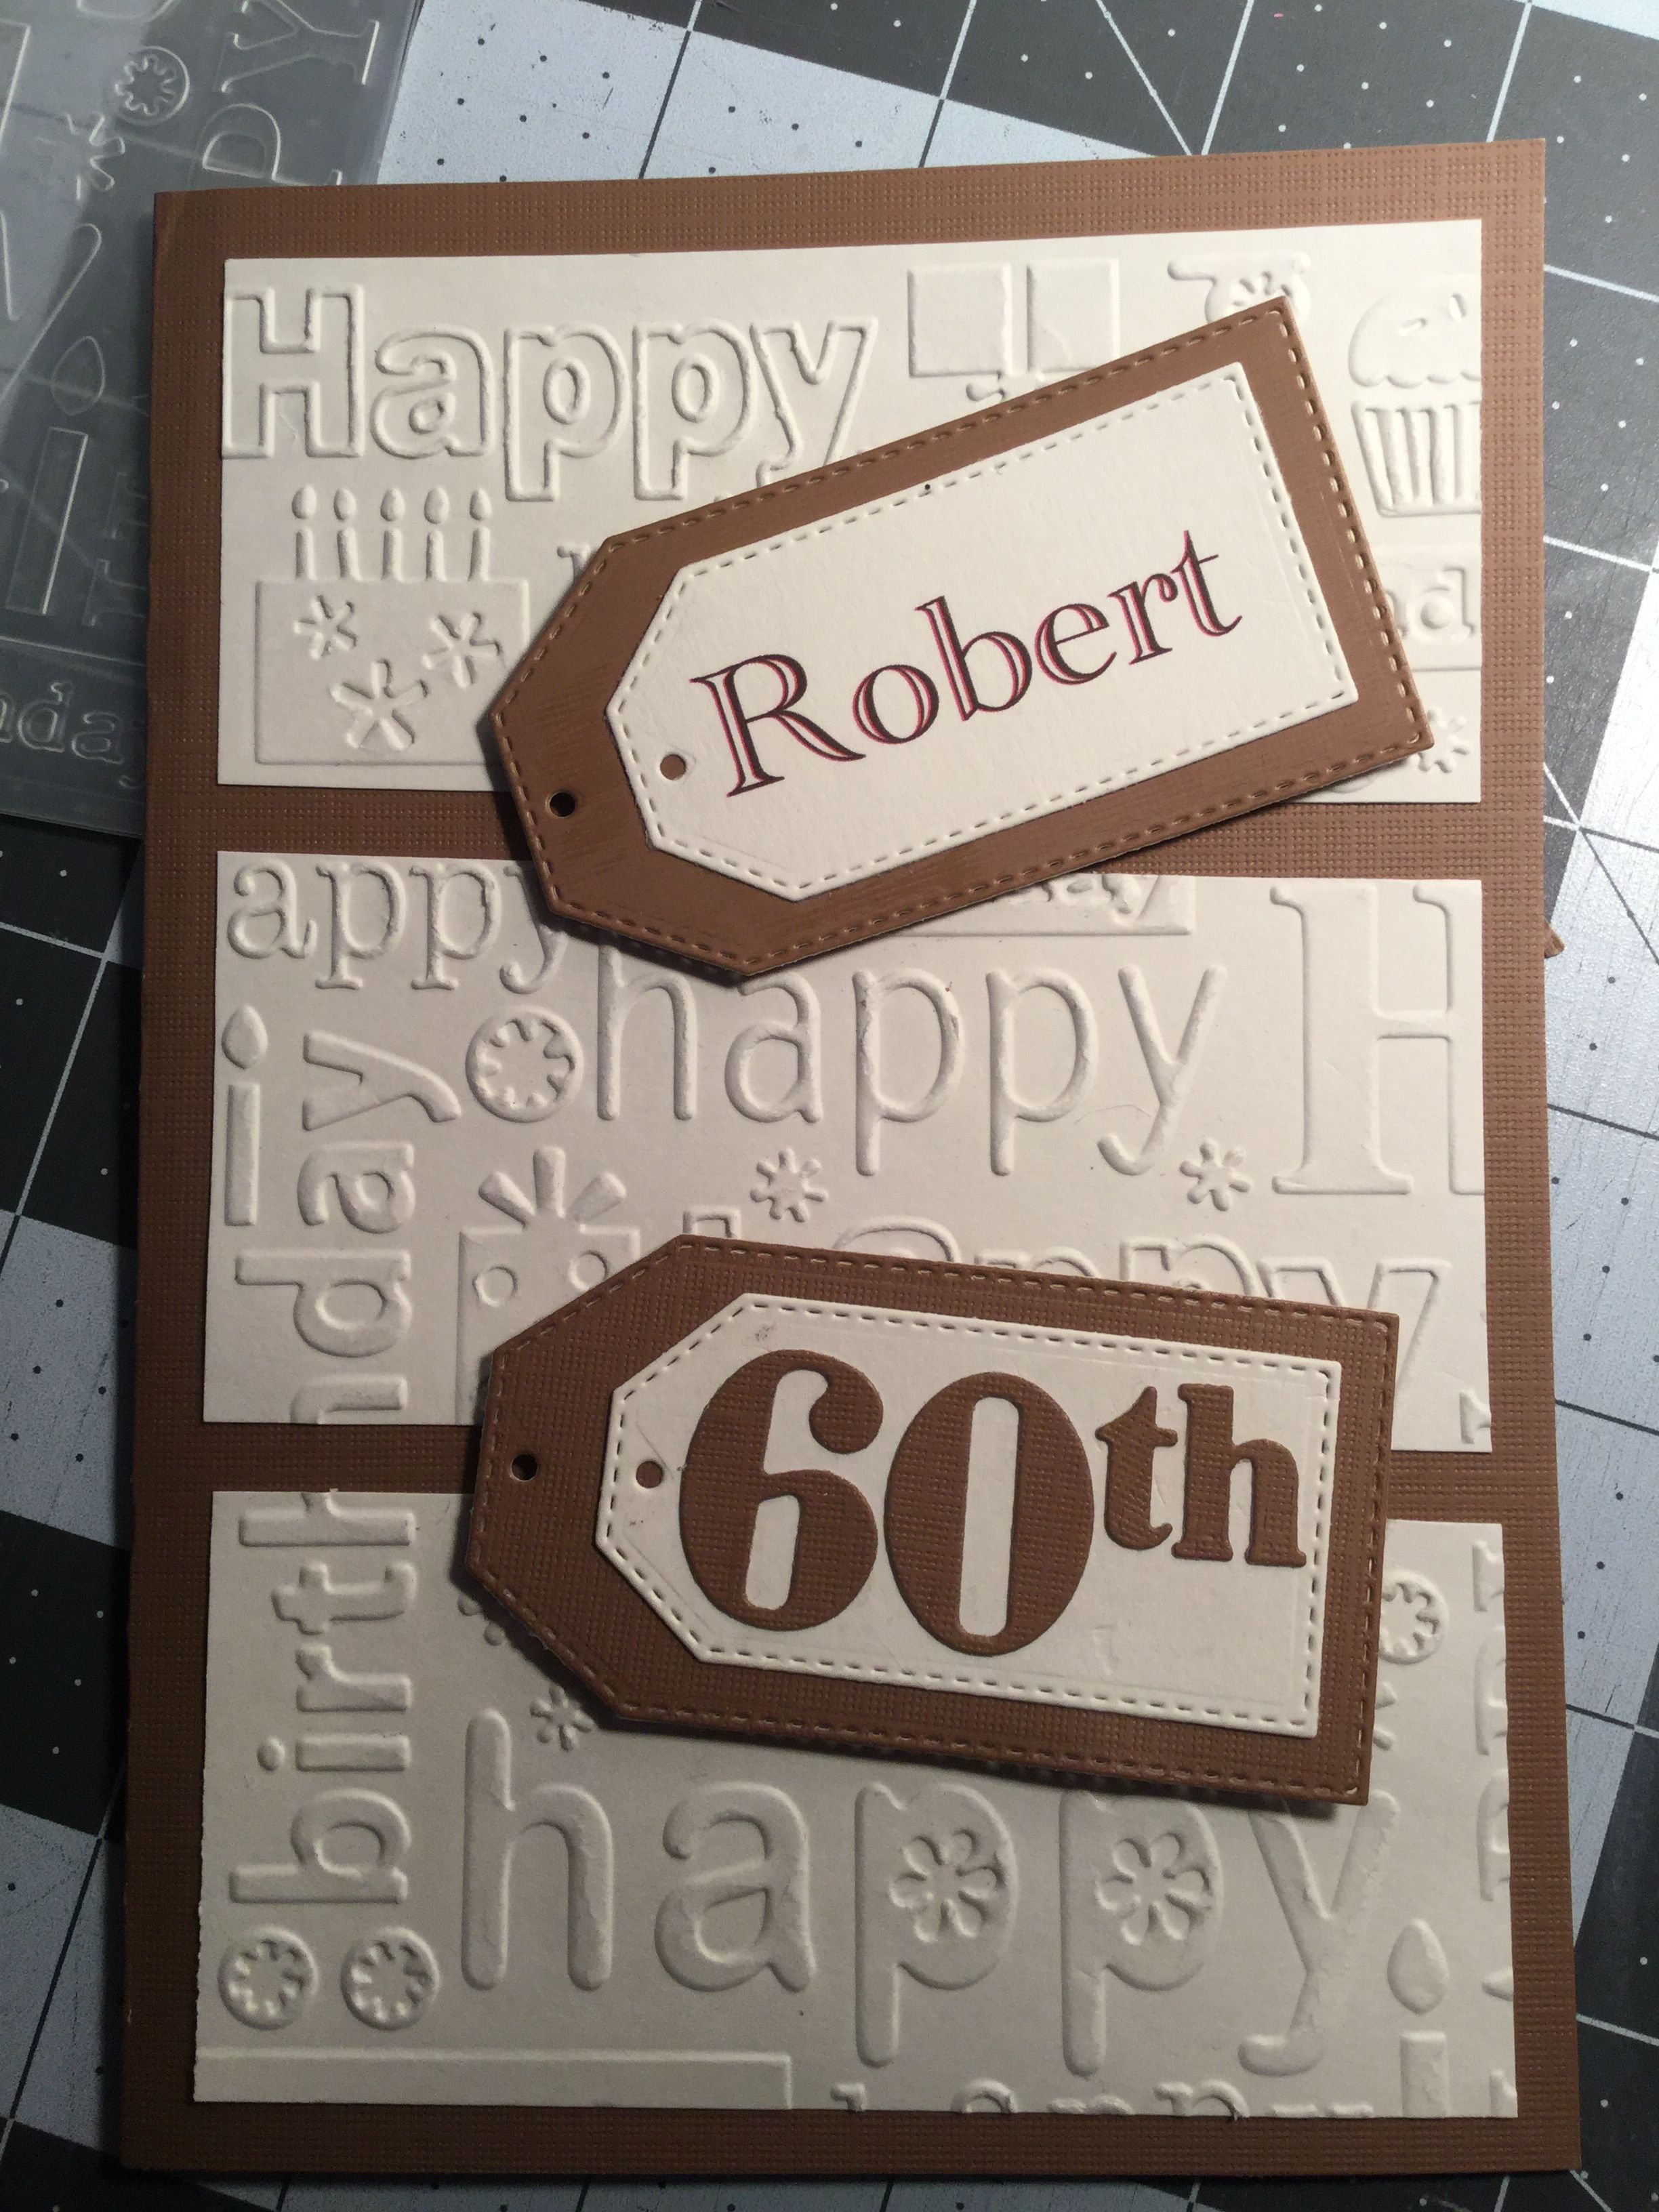 Pin By Chris Kraemer On My Cards Happy Cards Happy Birthday Cards Embossed Cards